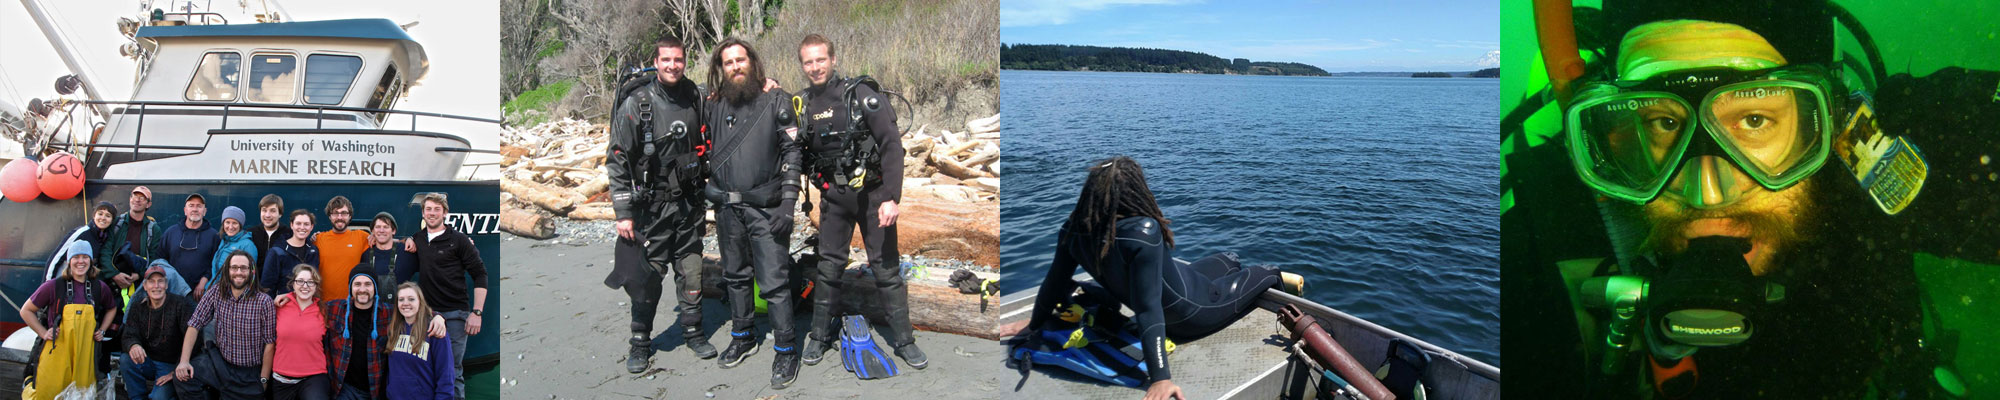 Photo strip of Ryan McLaughlin on a boat and diving